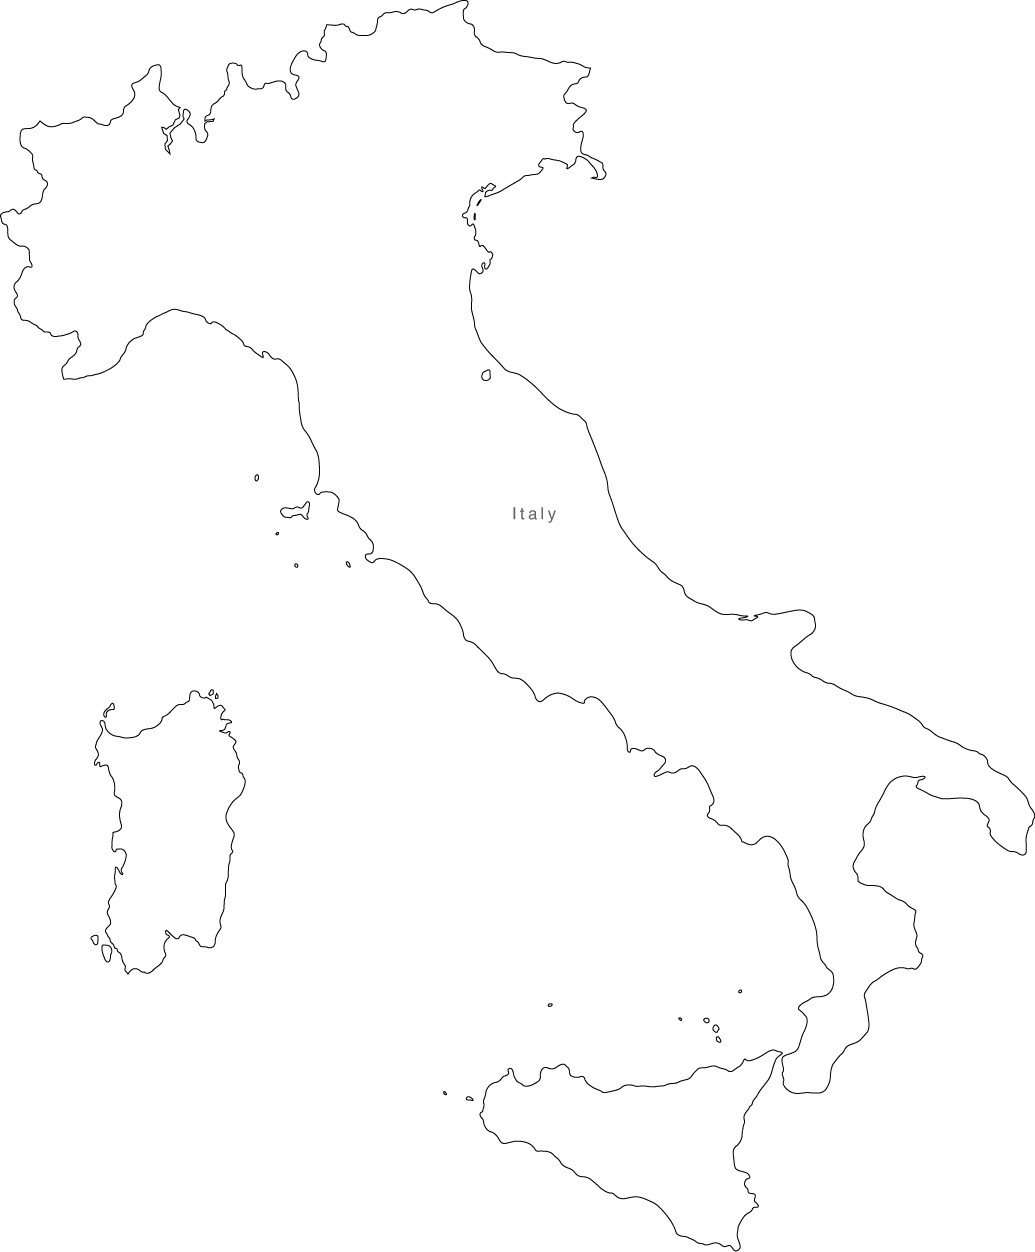 Black And White Map Of Italy.Italy Map Black White Simple Outline